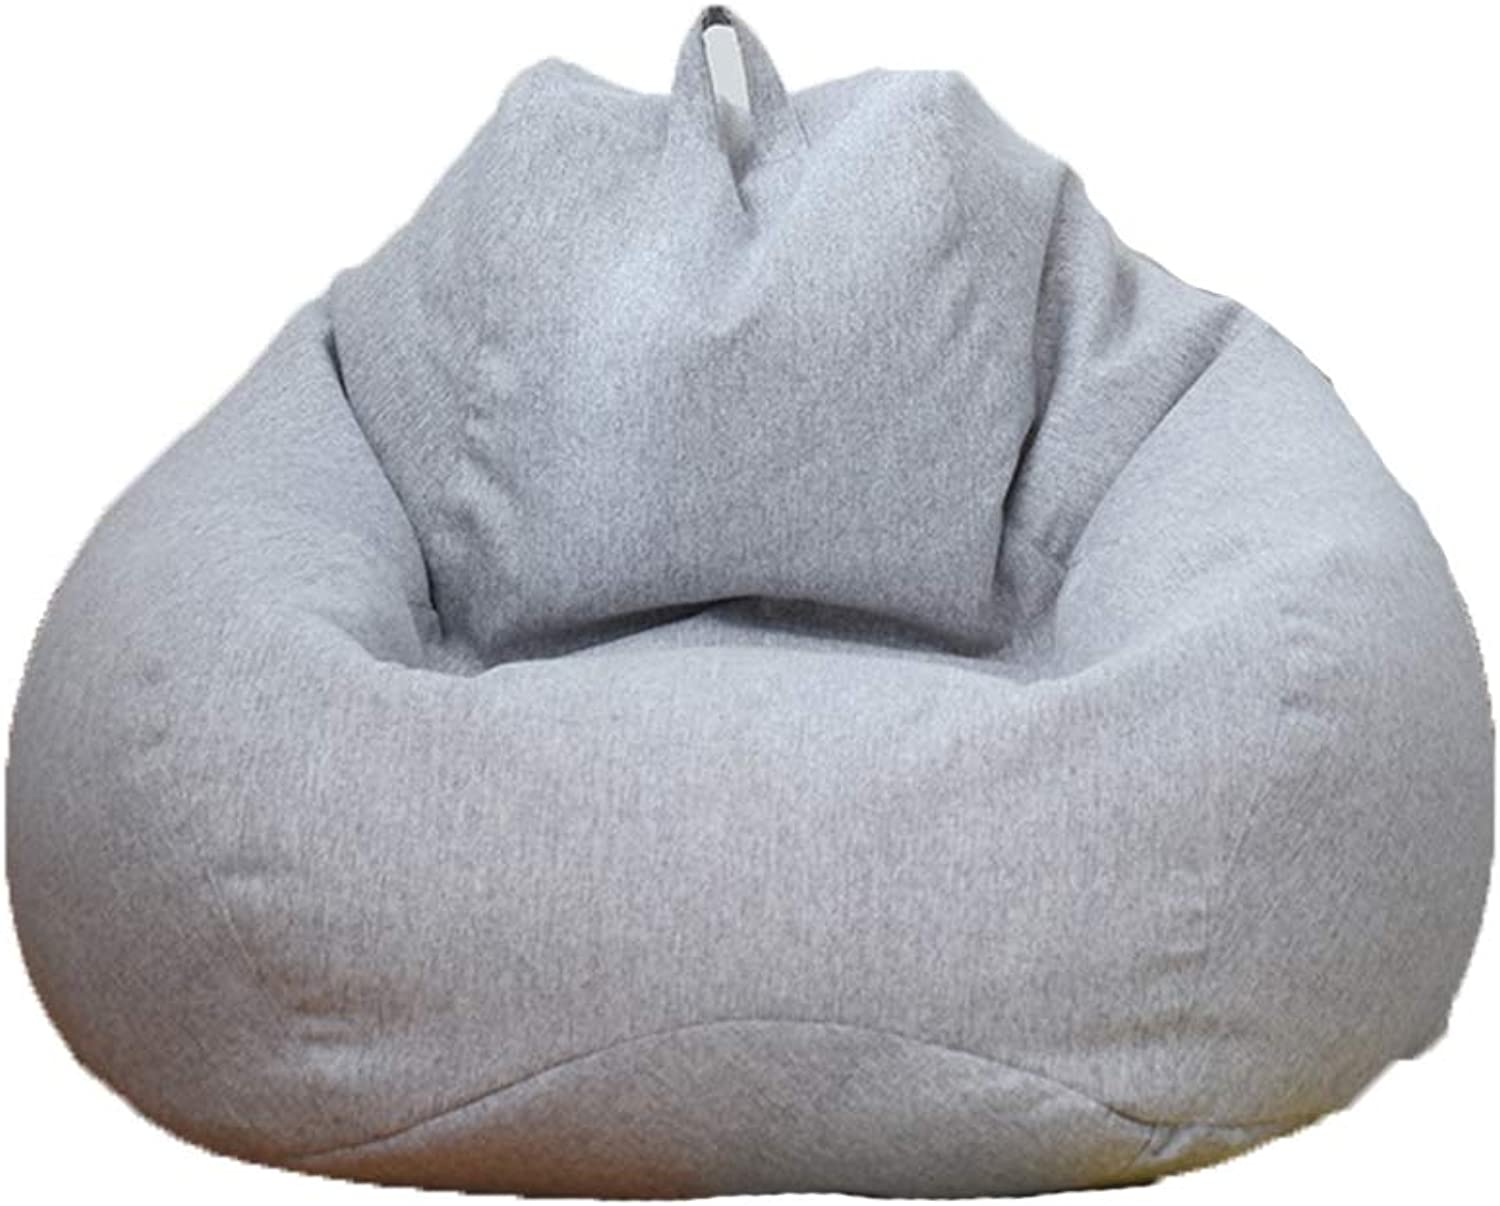 1354e3e21e29 Plush Ultra Soft Bean Bags Chairs for Kids, Styrofoam Styrofoam ...